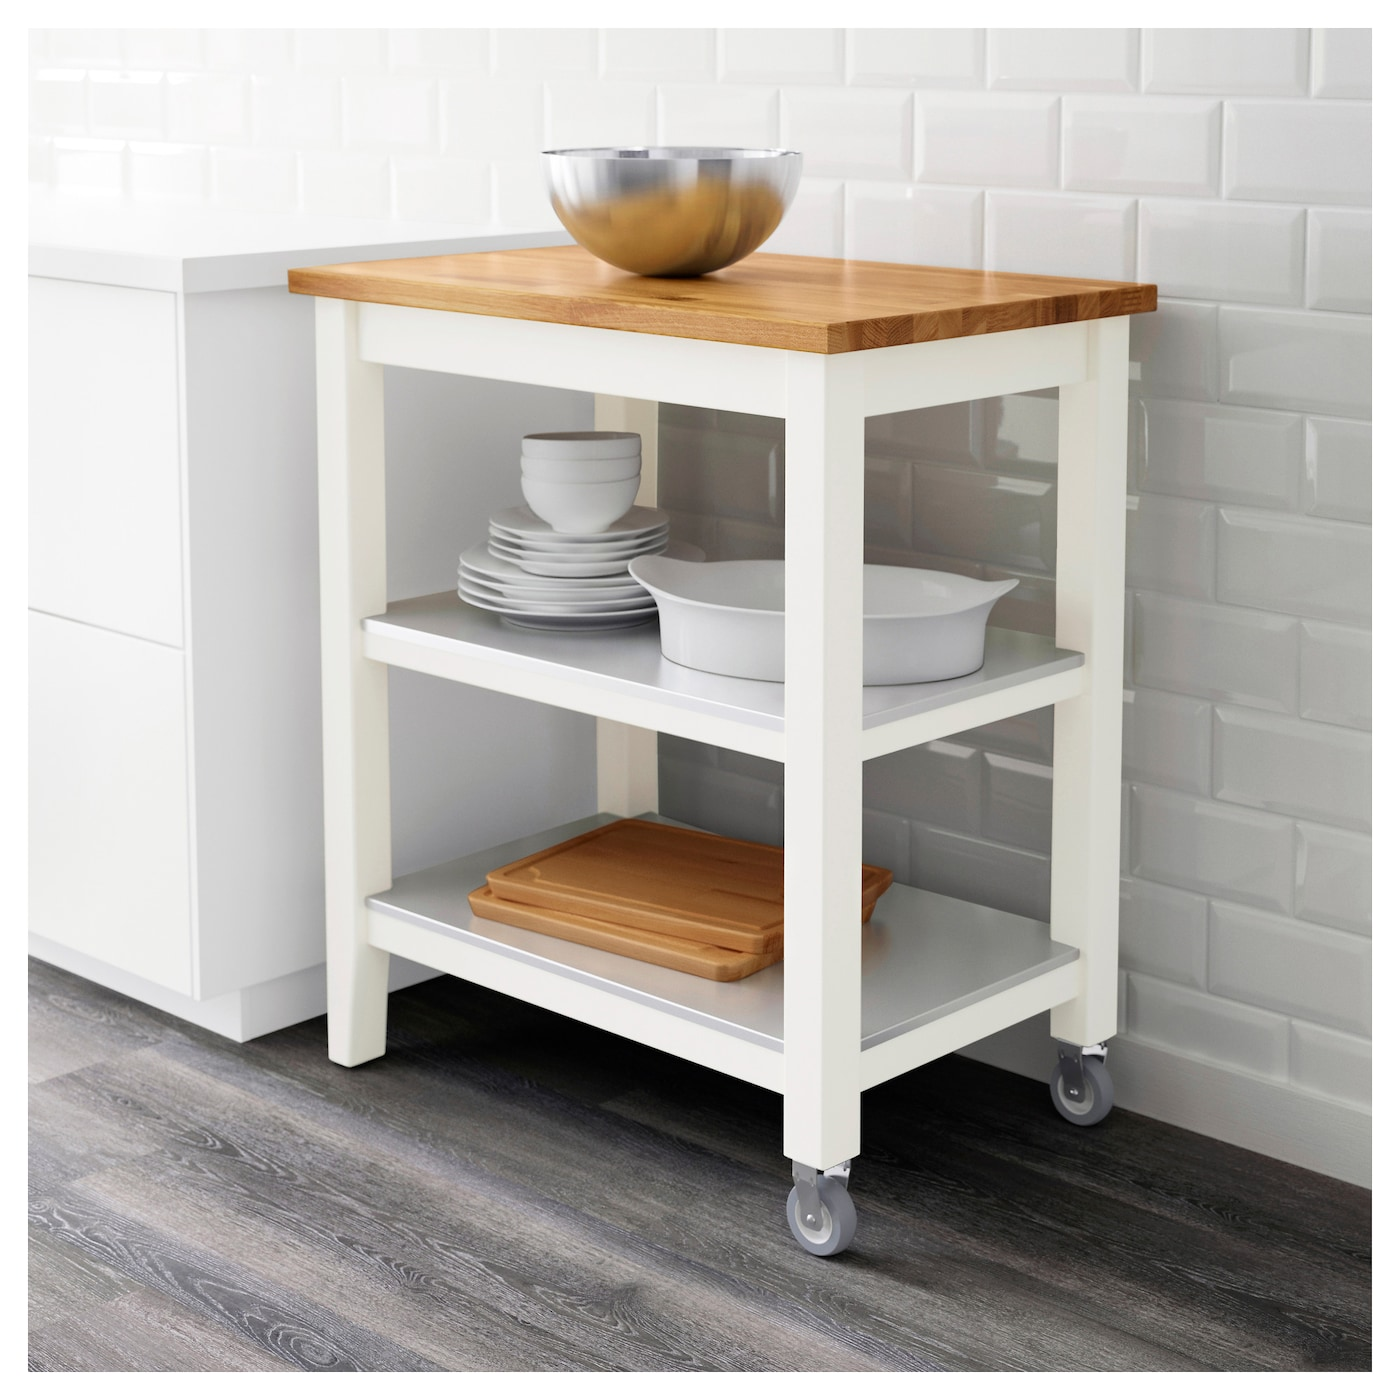 stenstorp kitchen trolley white oak 79x51x90 cm ikea. Black Bedroom Furniture Sets. Home Design Ideas